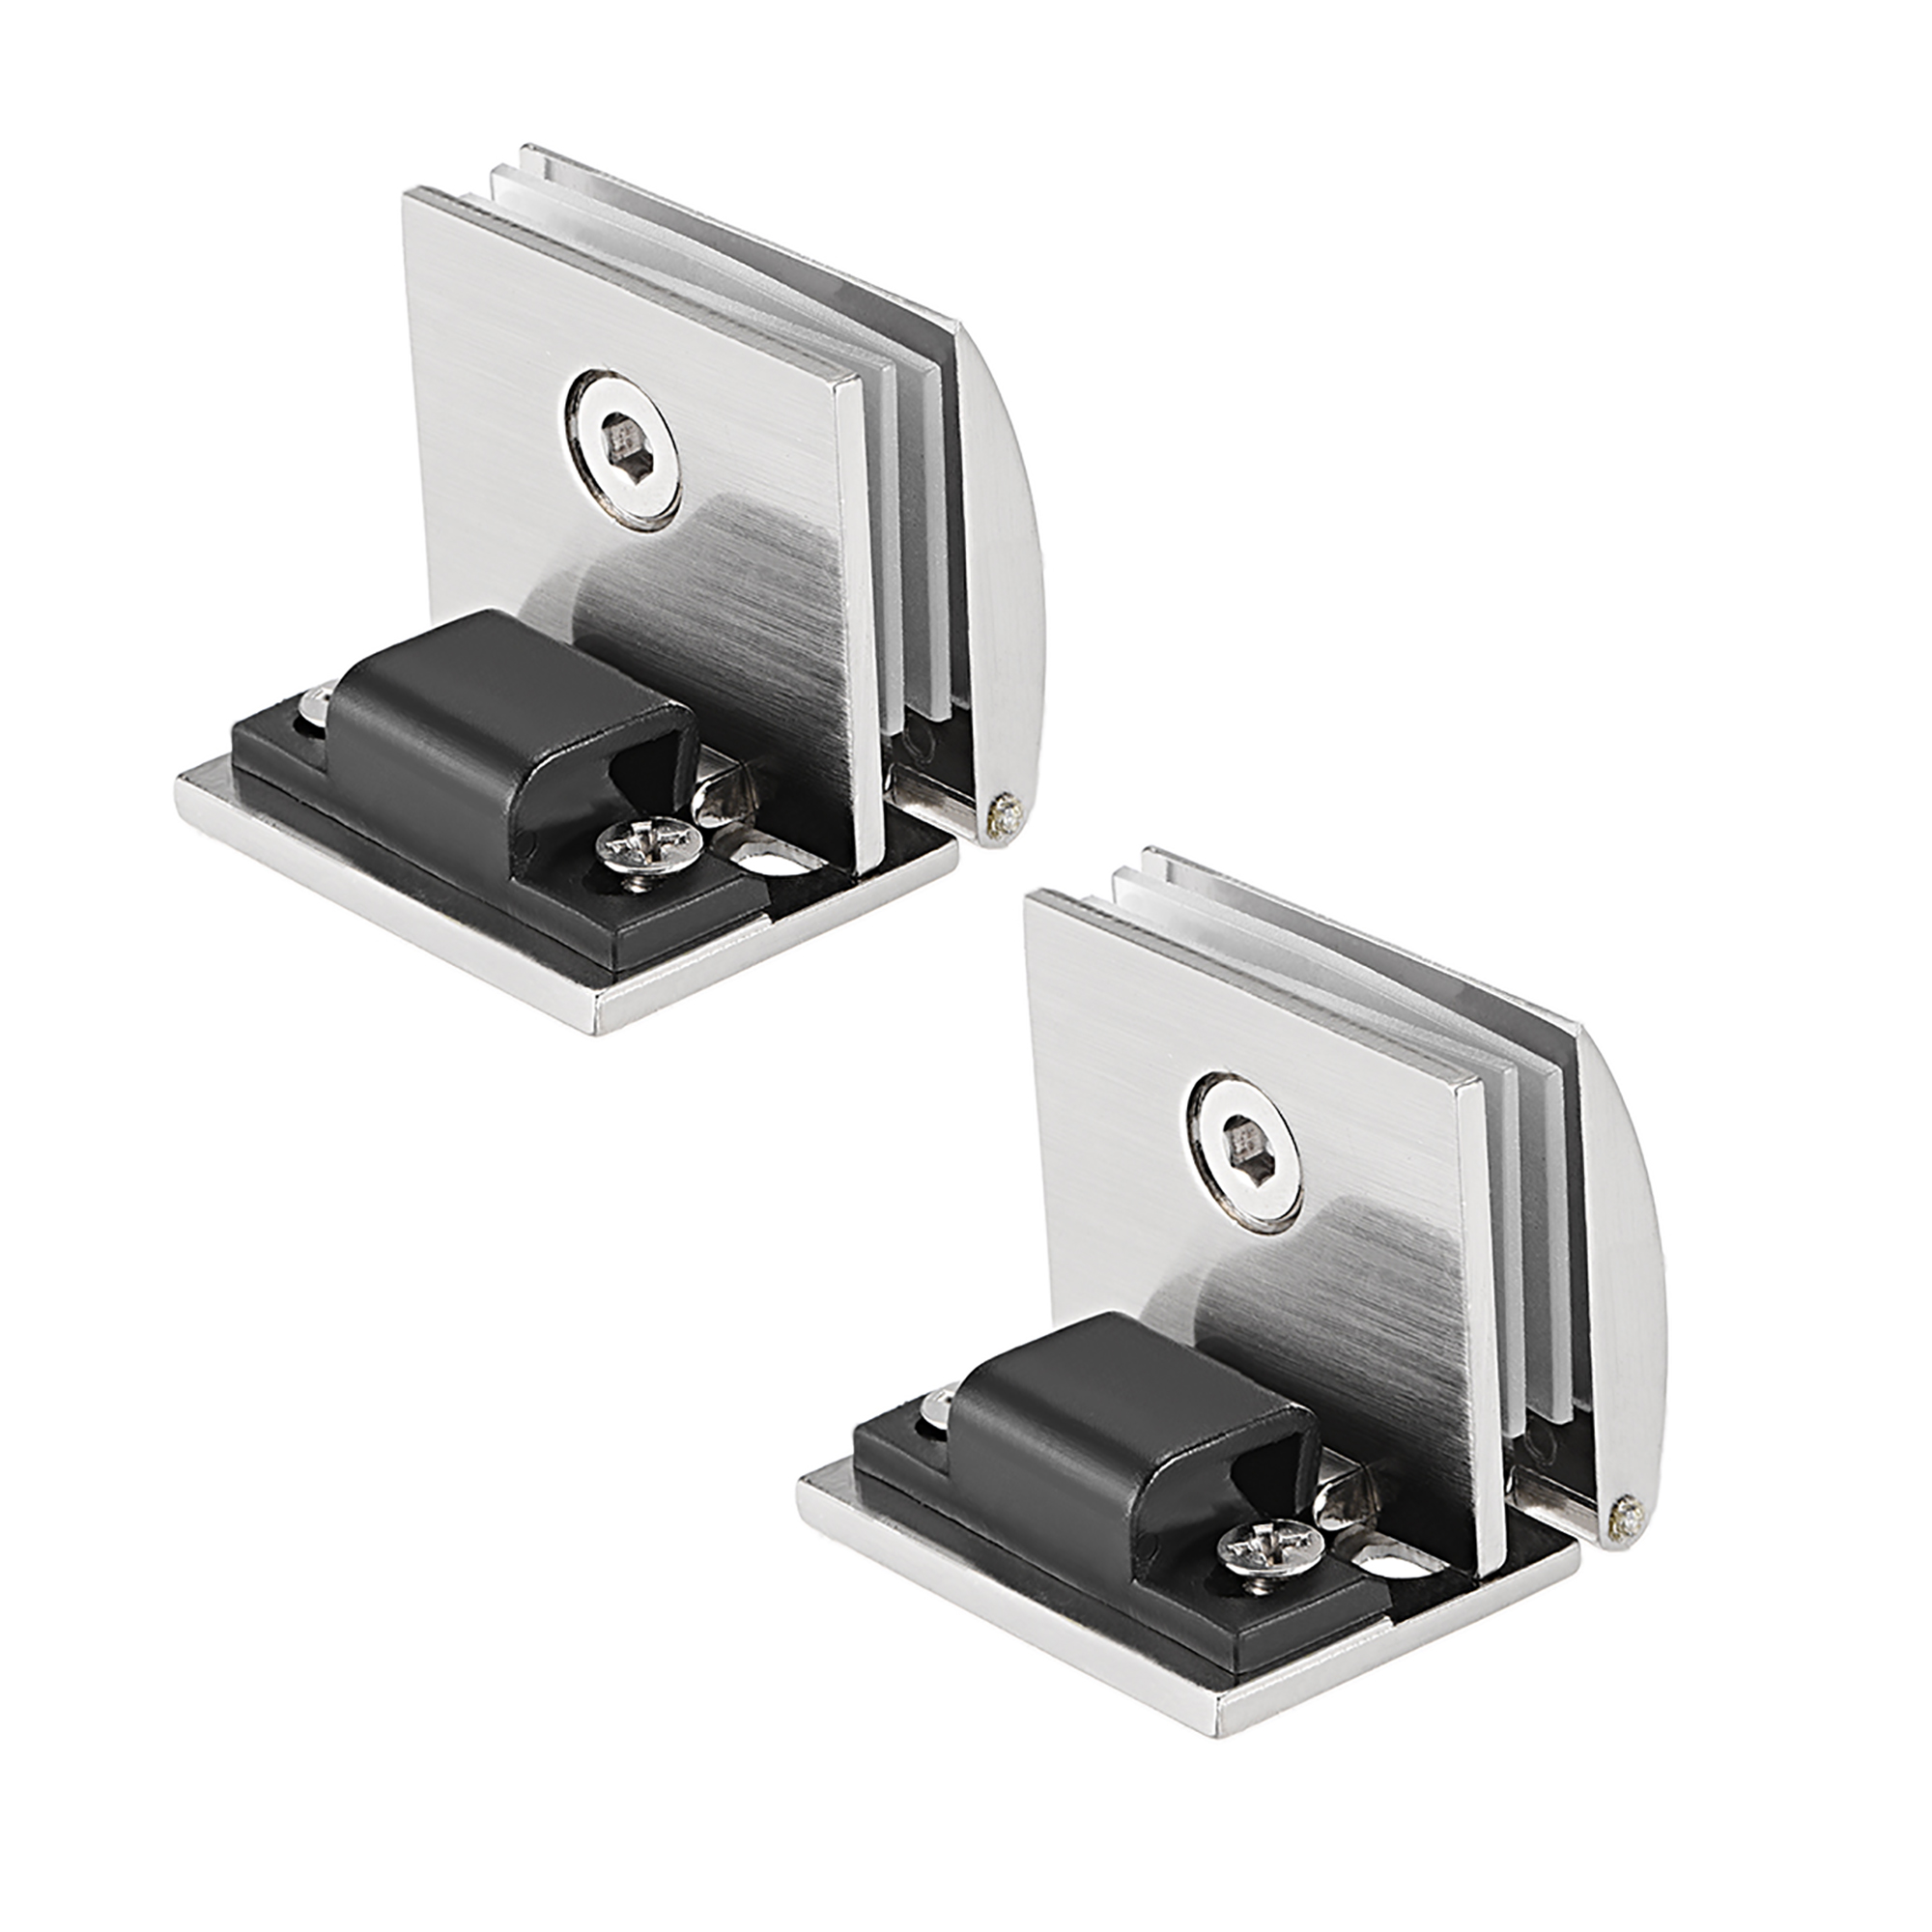 Uxcell Glass Hinge Showcase Door Hinge Glass Clamp for 5-8mm Thickness 2Pcs - image 5 of 5